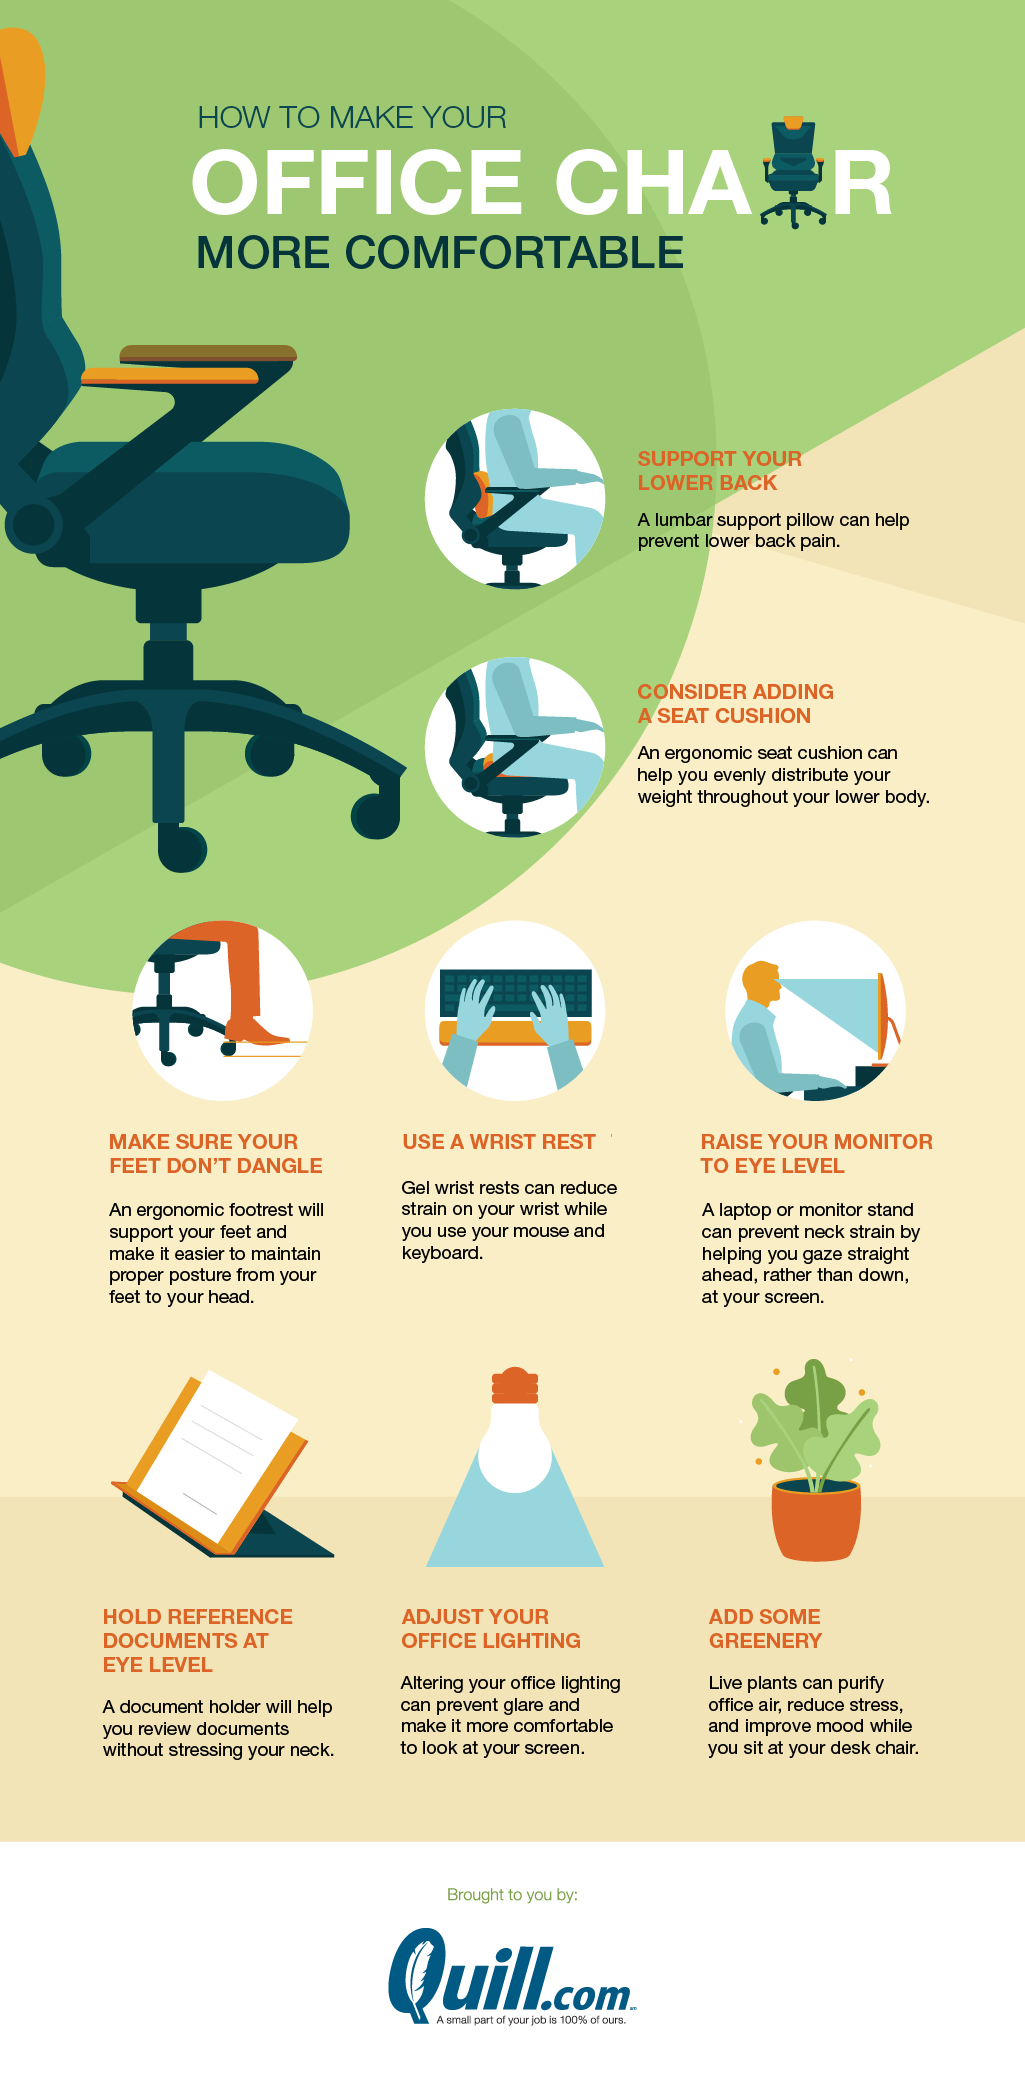 How To Make An Office Chair More Comfortable Quill Com